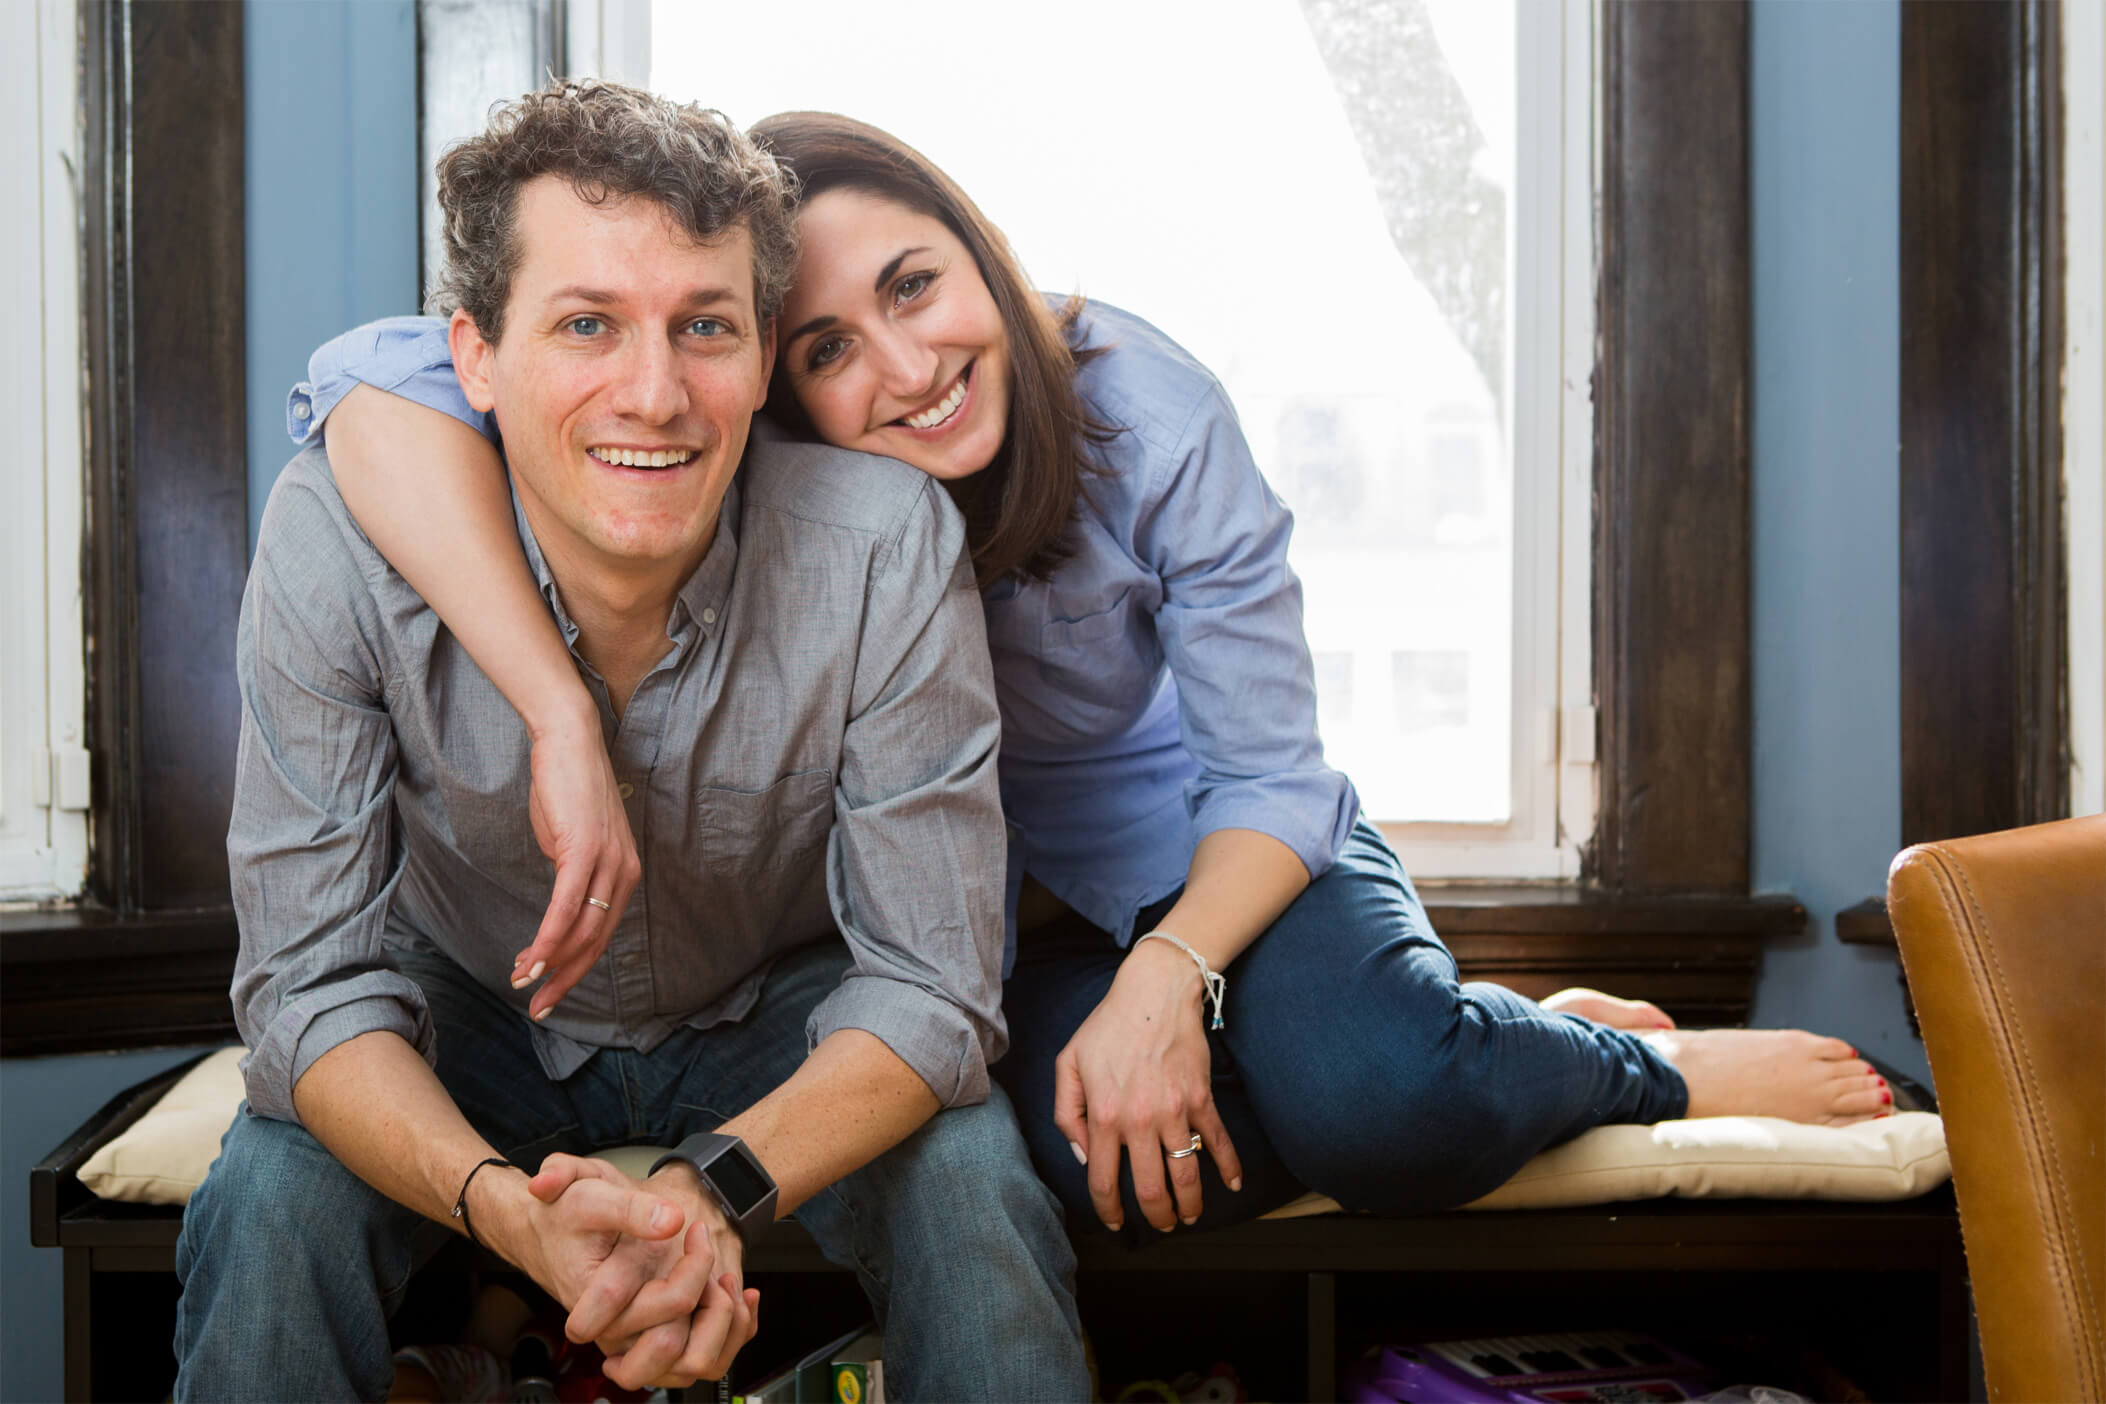 Portrait of Brian Wallach (left) and Sandra Abrevaya (right), the co-founders of I AM ALS